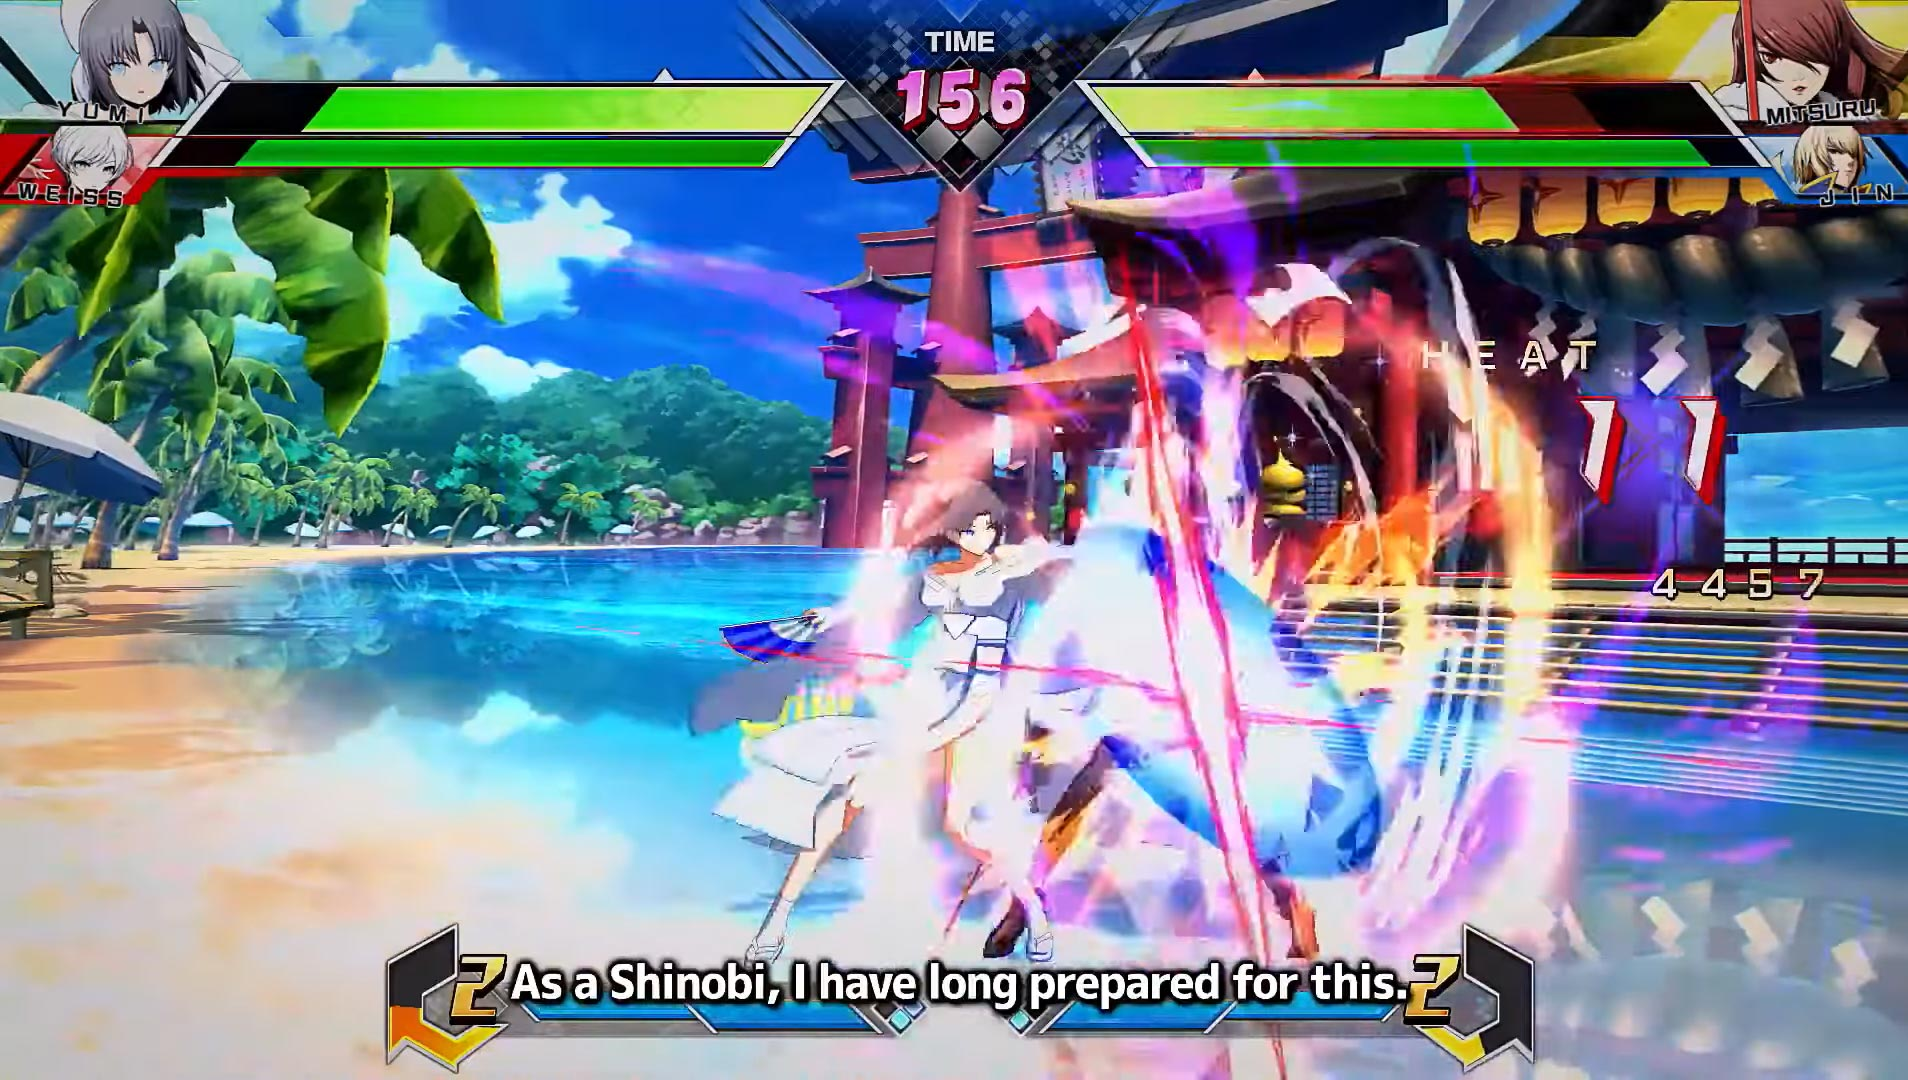 BlazBlue Cross Tag 2.0 2 out of 8 image gallery